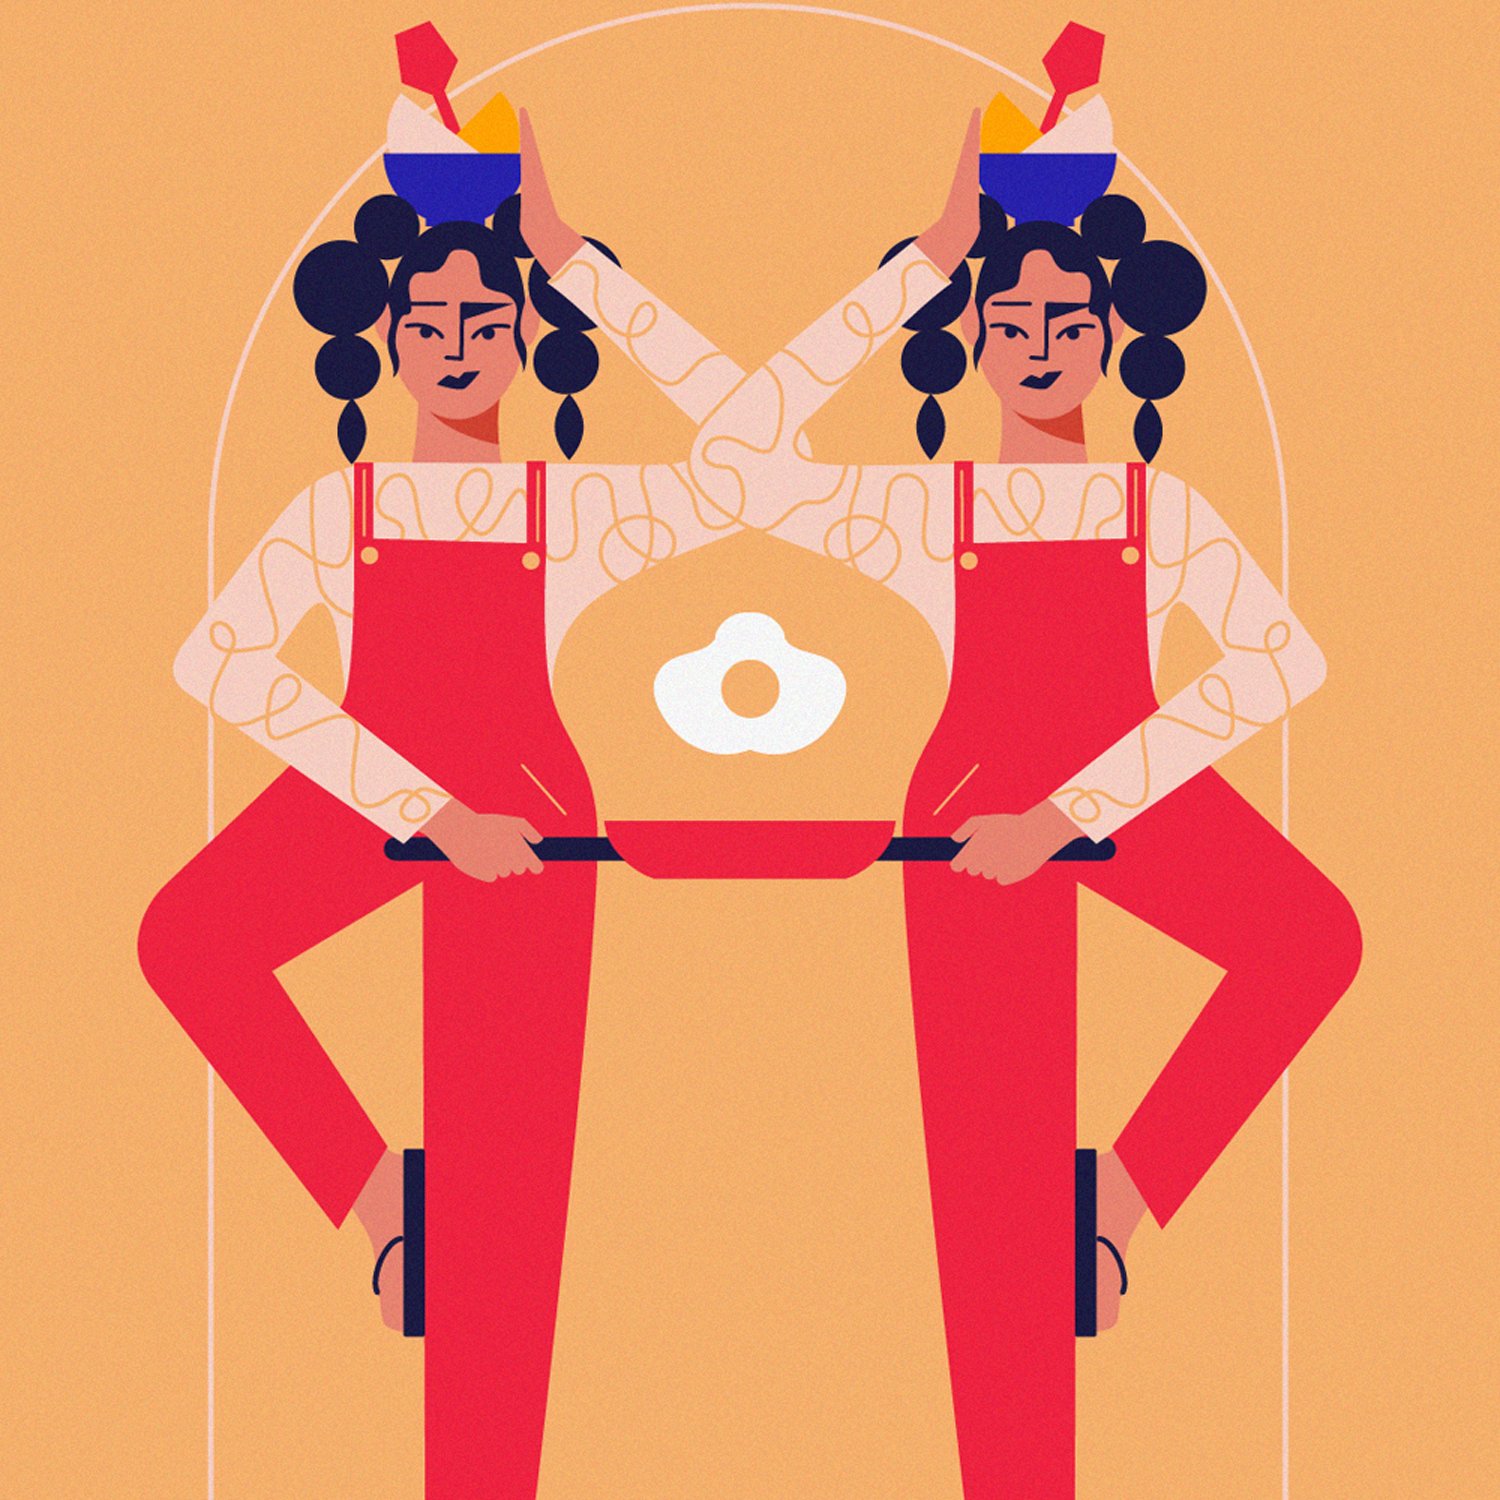 Editorial illustration of two girls women making fried egg and deing rhe dishes - everyday struggle